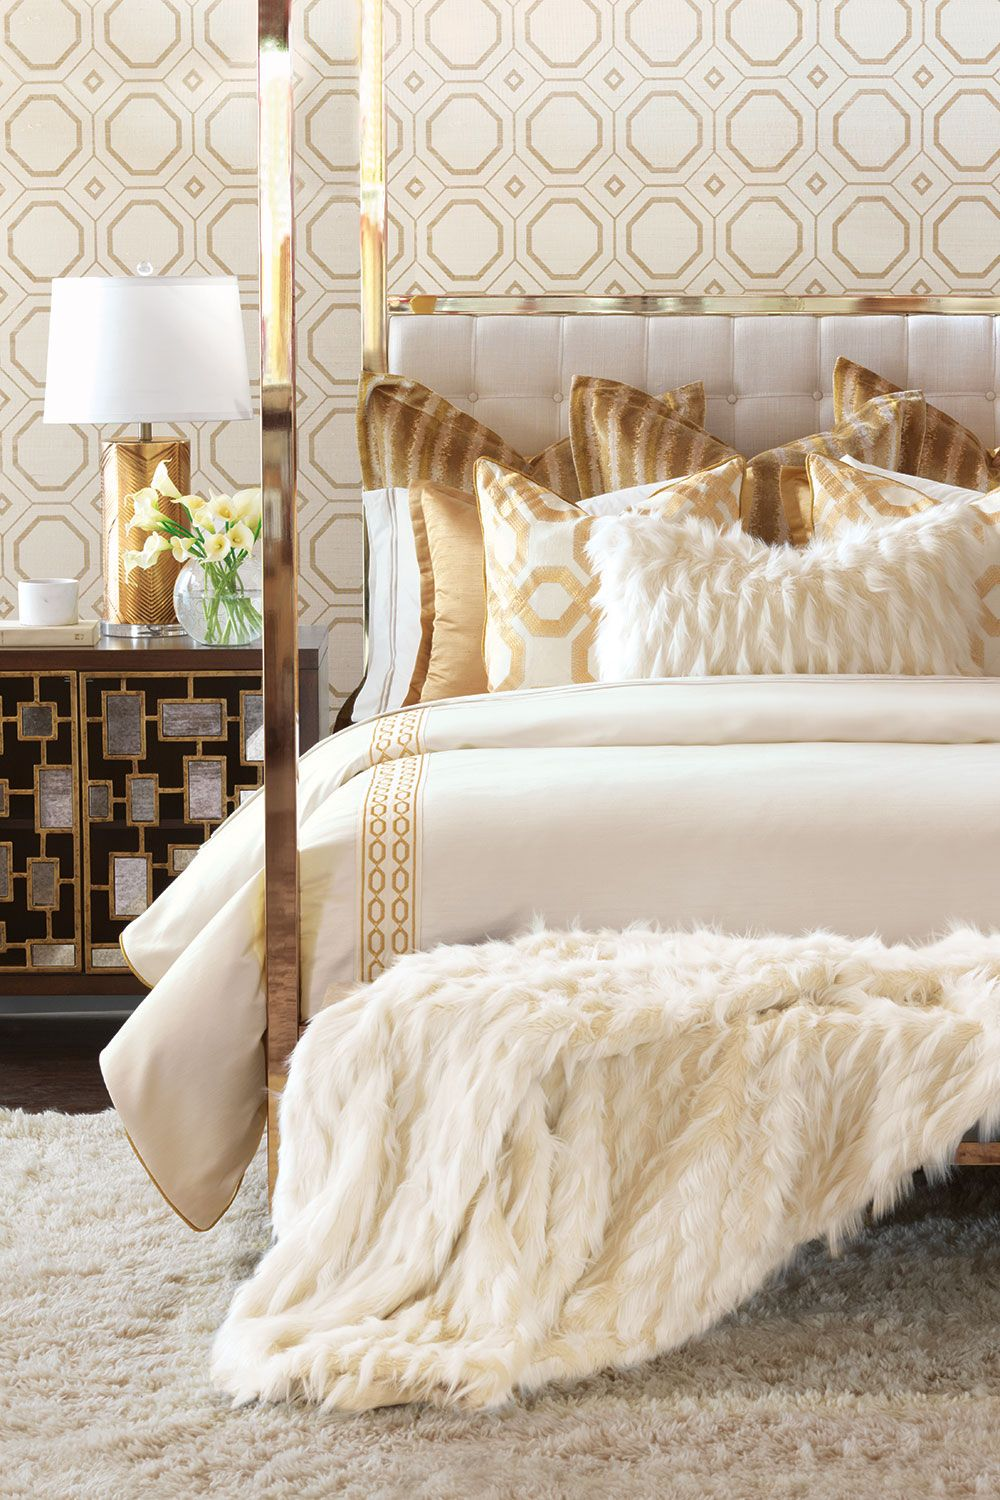 Eastern Accents Bedding Bed linens luxury, Bed, Bed design